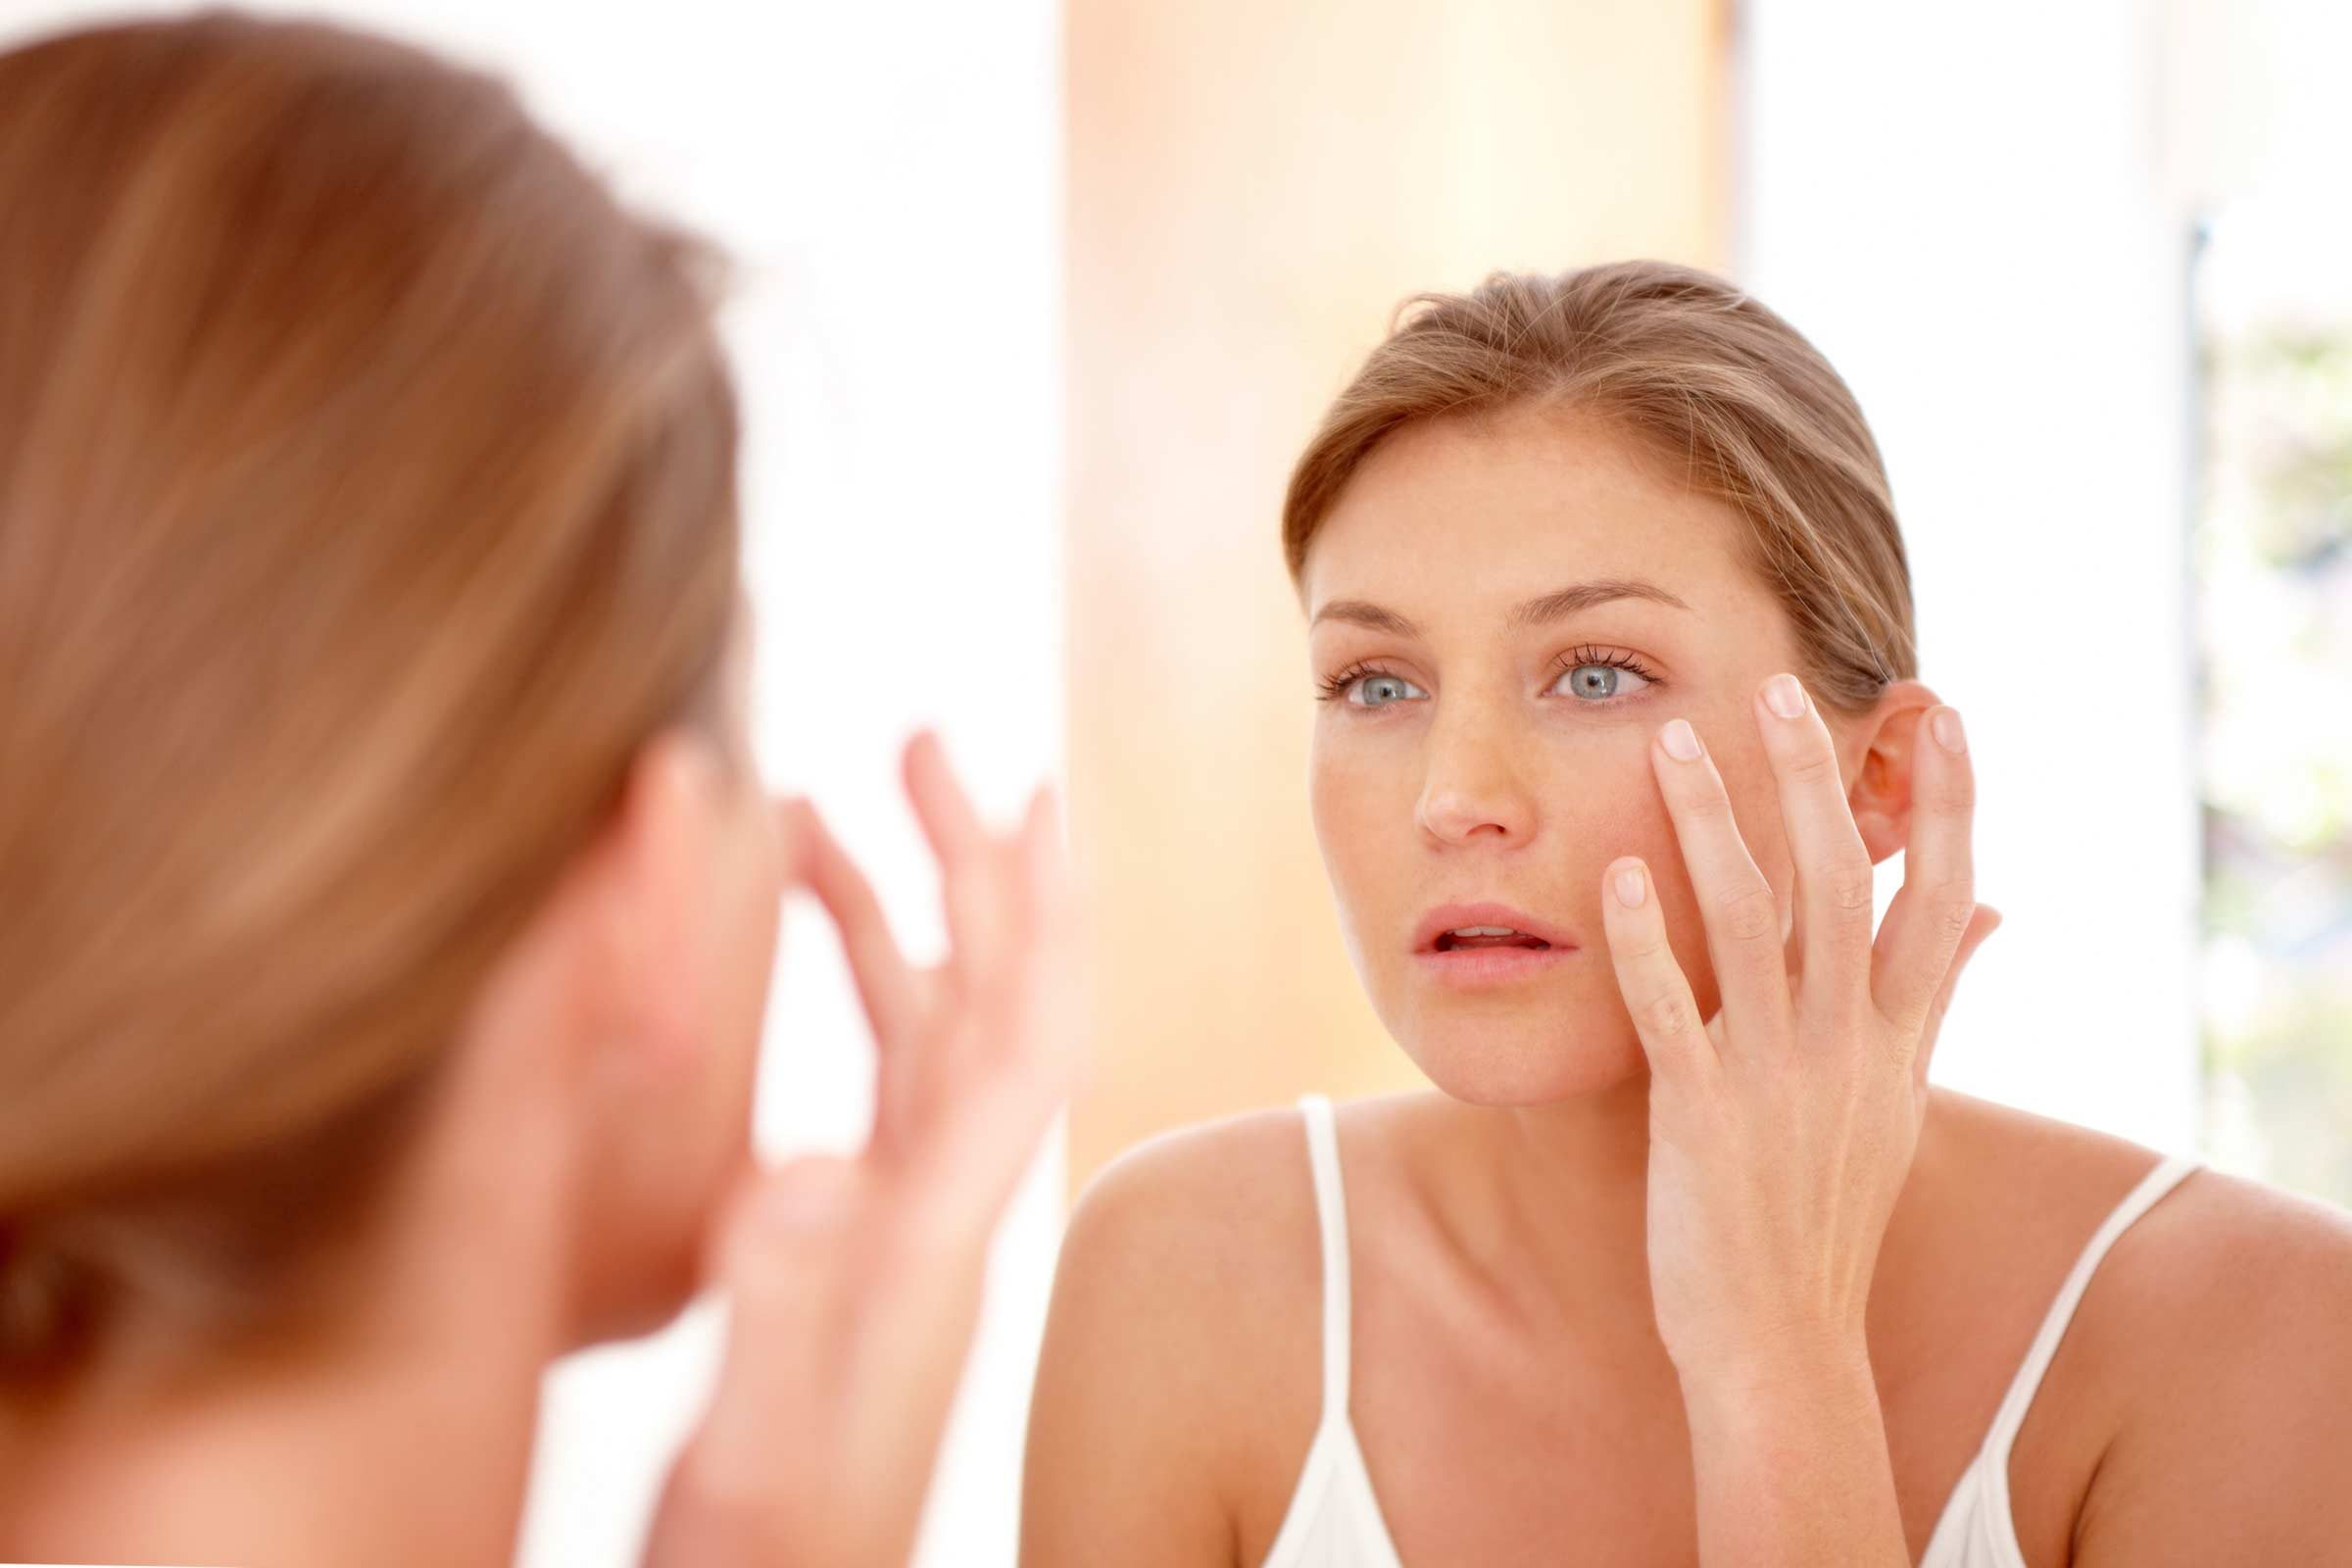 How to Look Younger: 9 Tricks Dermatologists Won't Share